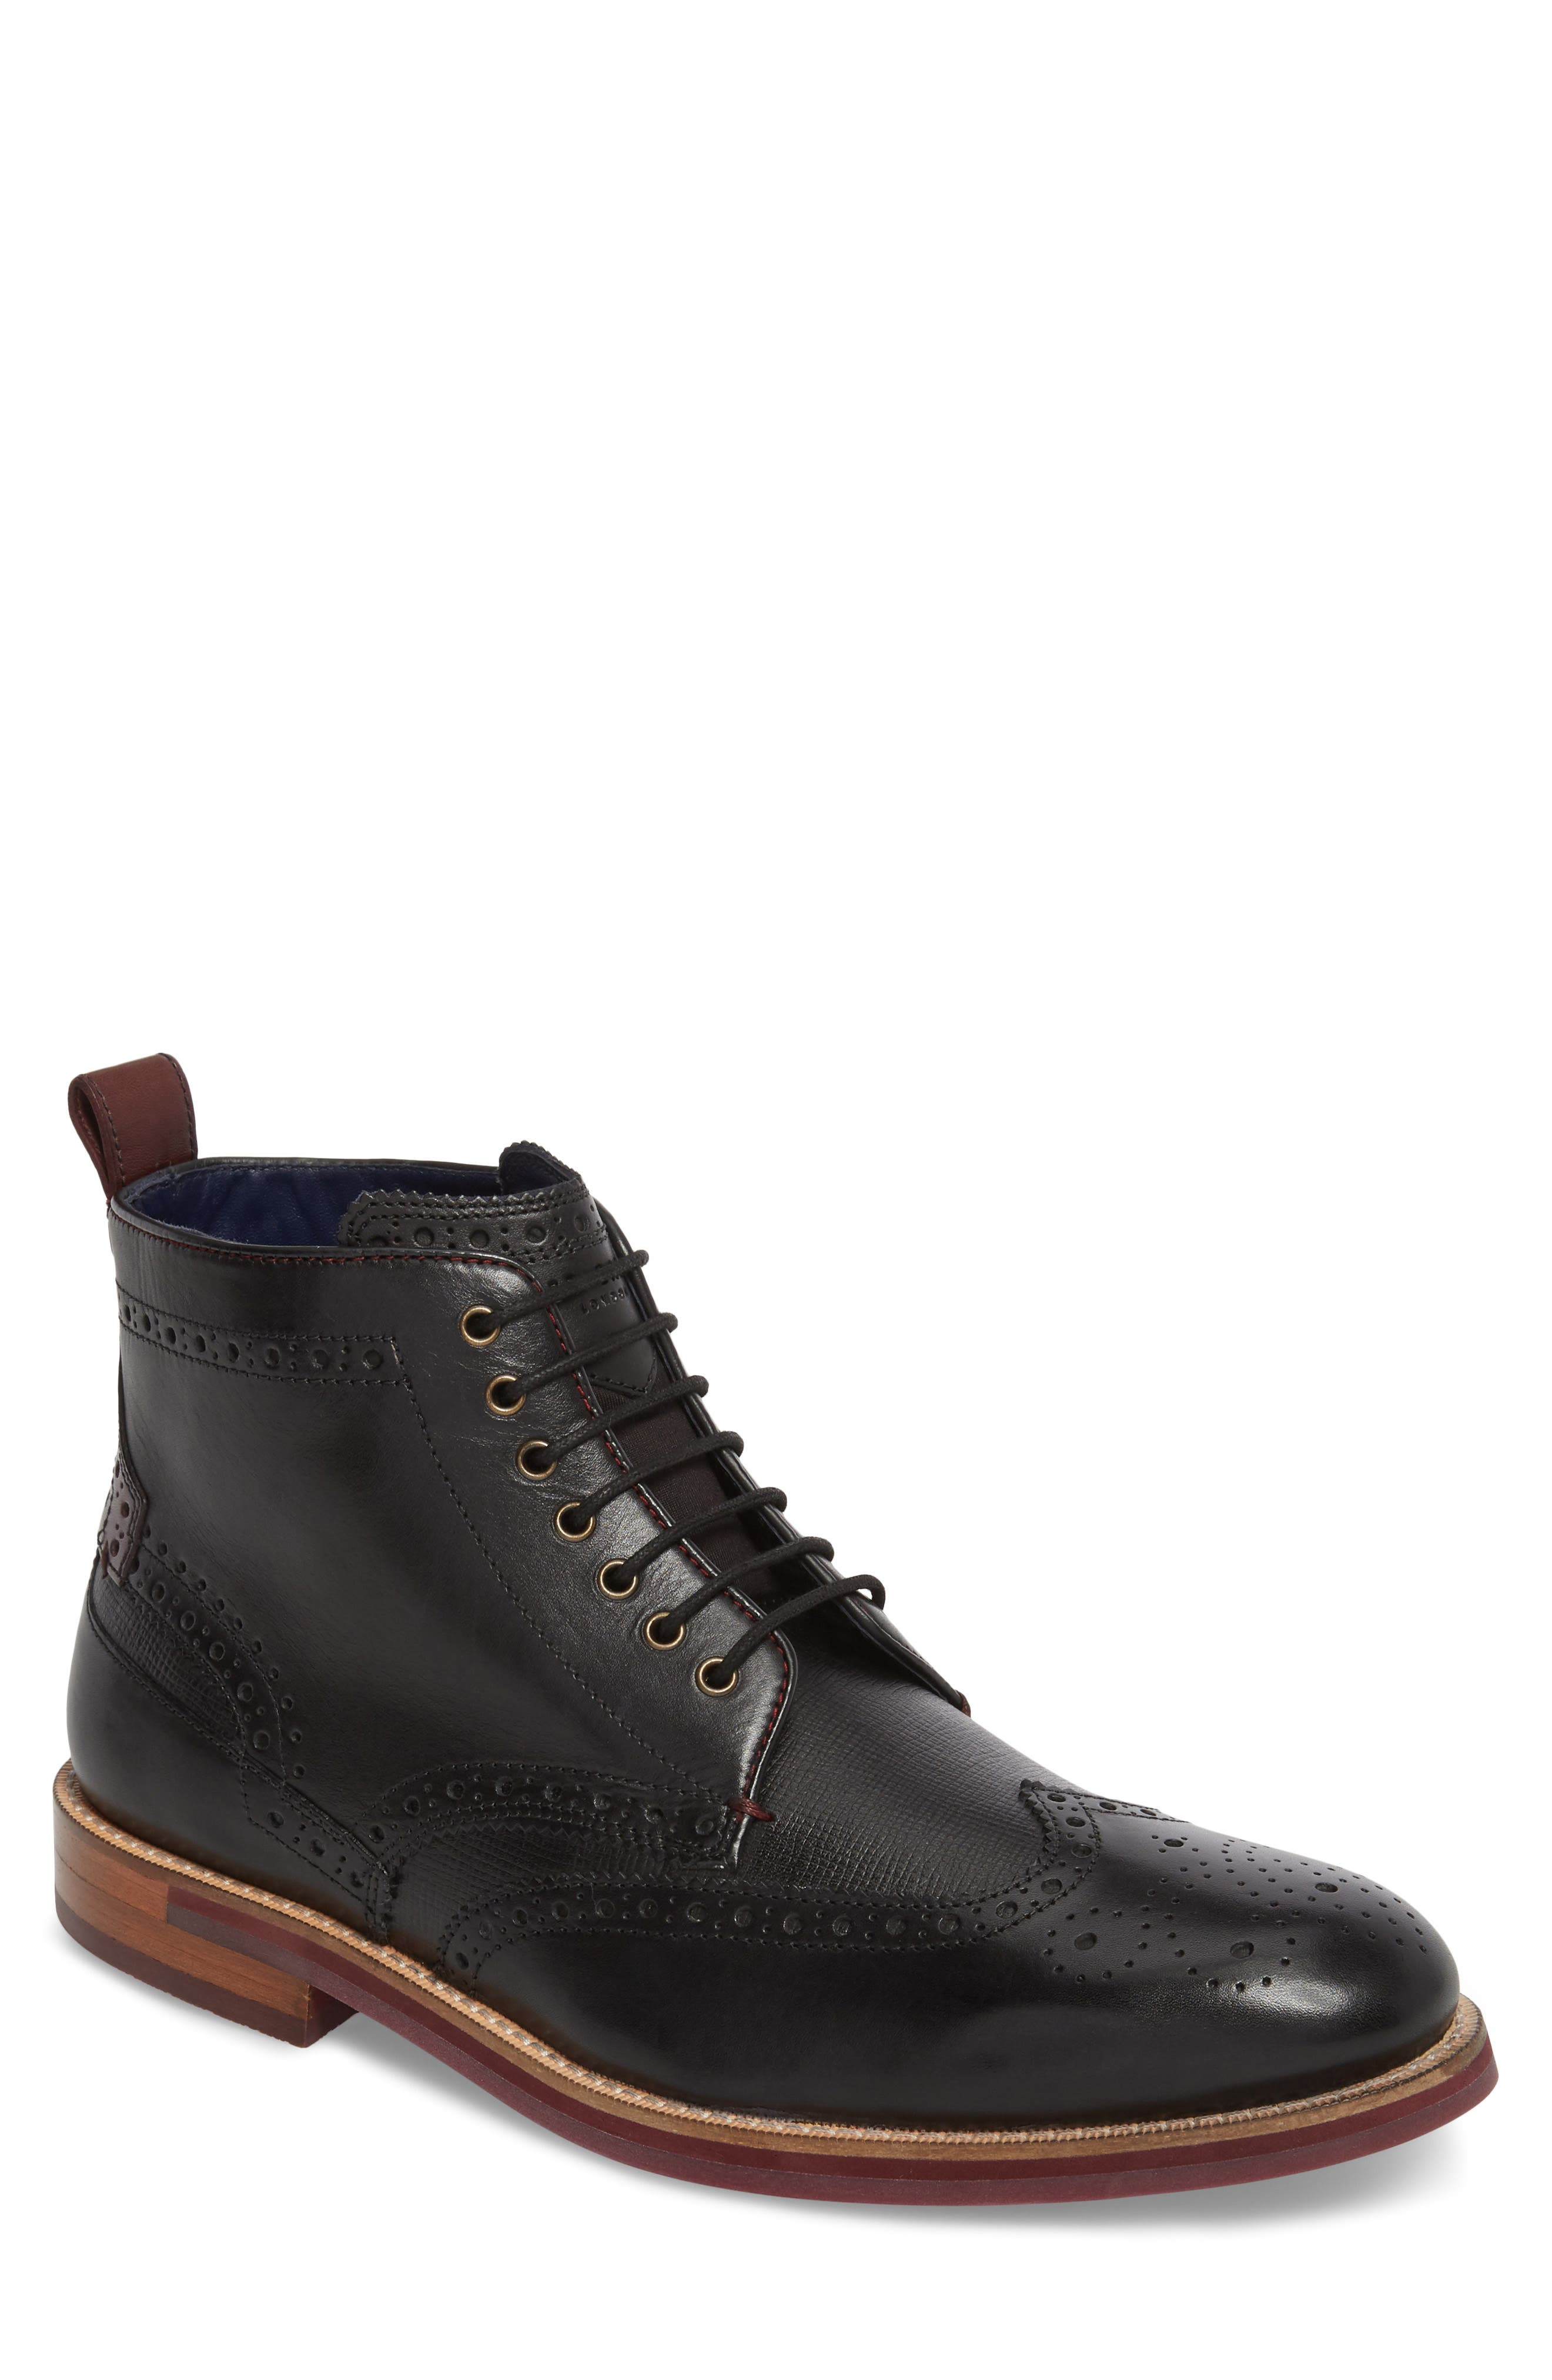 TED BAKER LONDON Hjenno Wingtip Boot, Main, color, 001